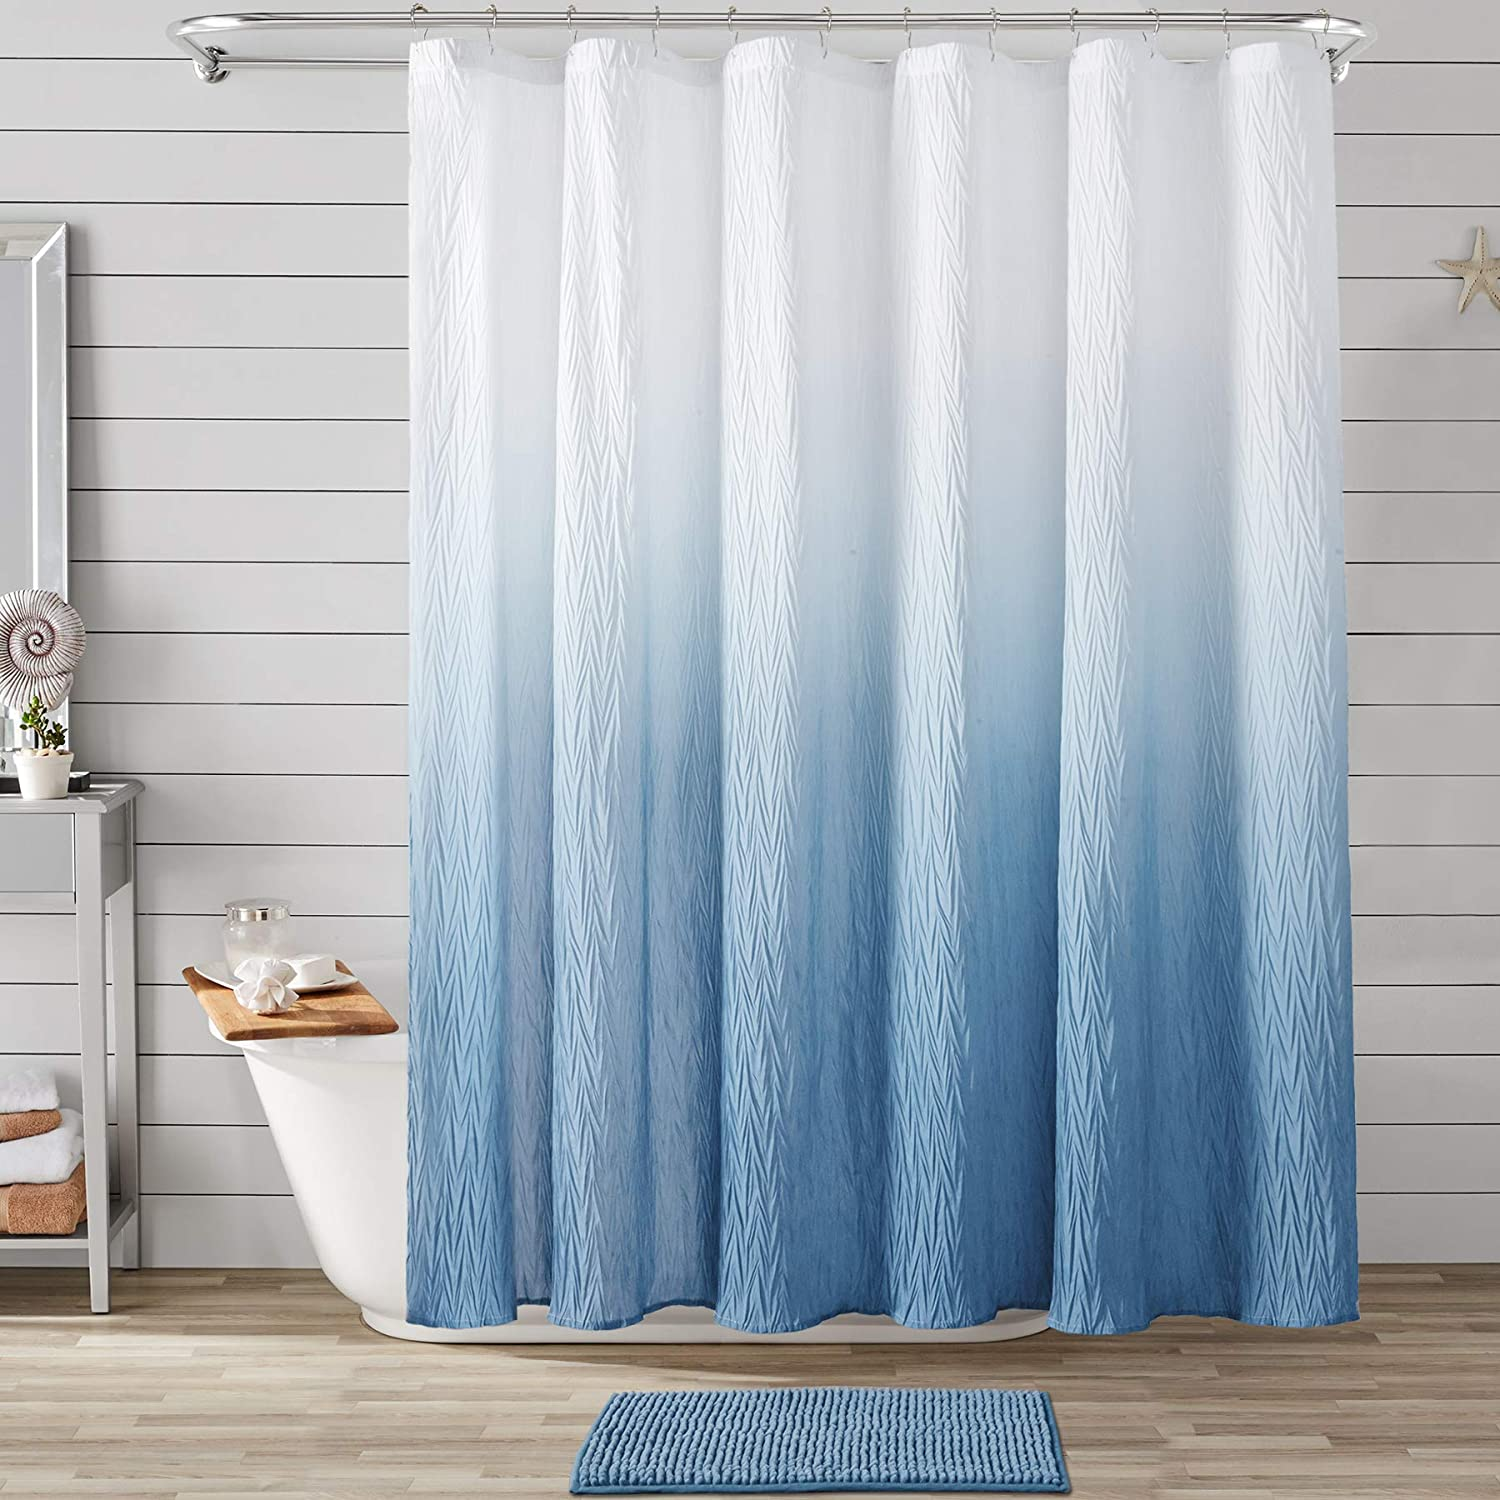 JSLOVE Ombre Textured Shower Atlanta Mall Curtain Set Bath for Bathr Mat with Now free shipping